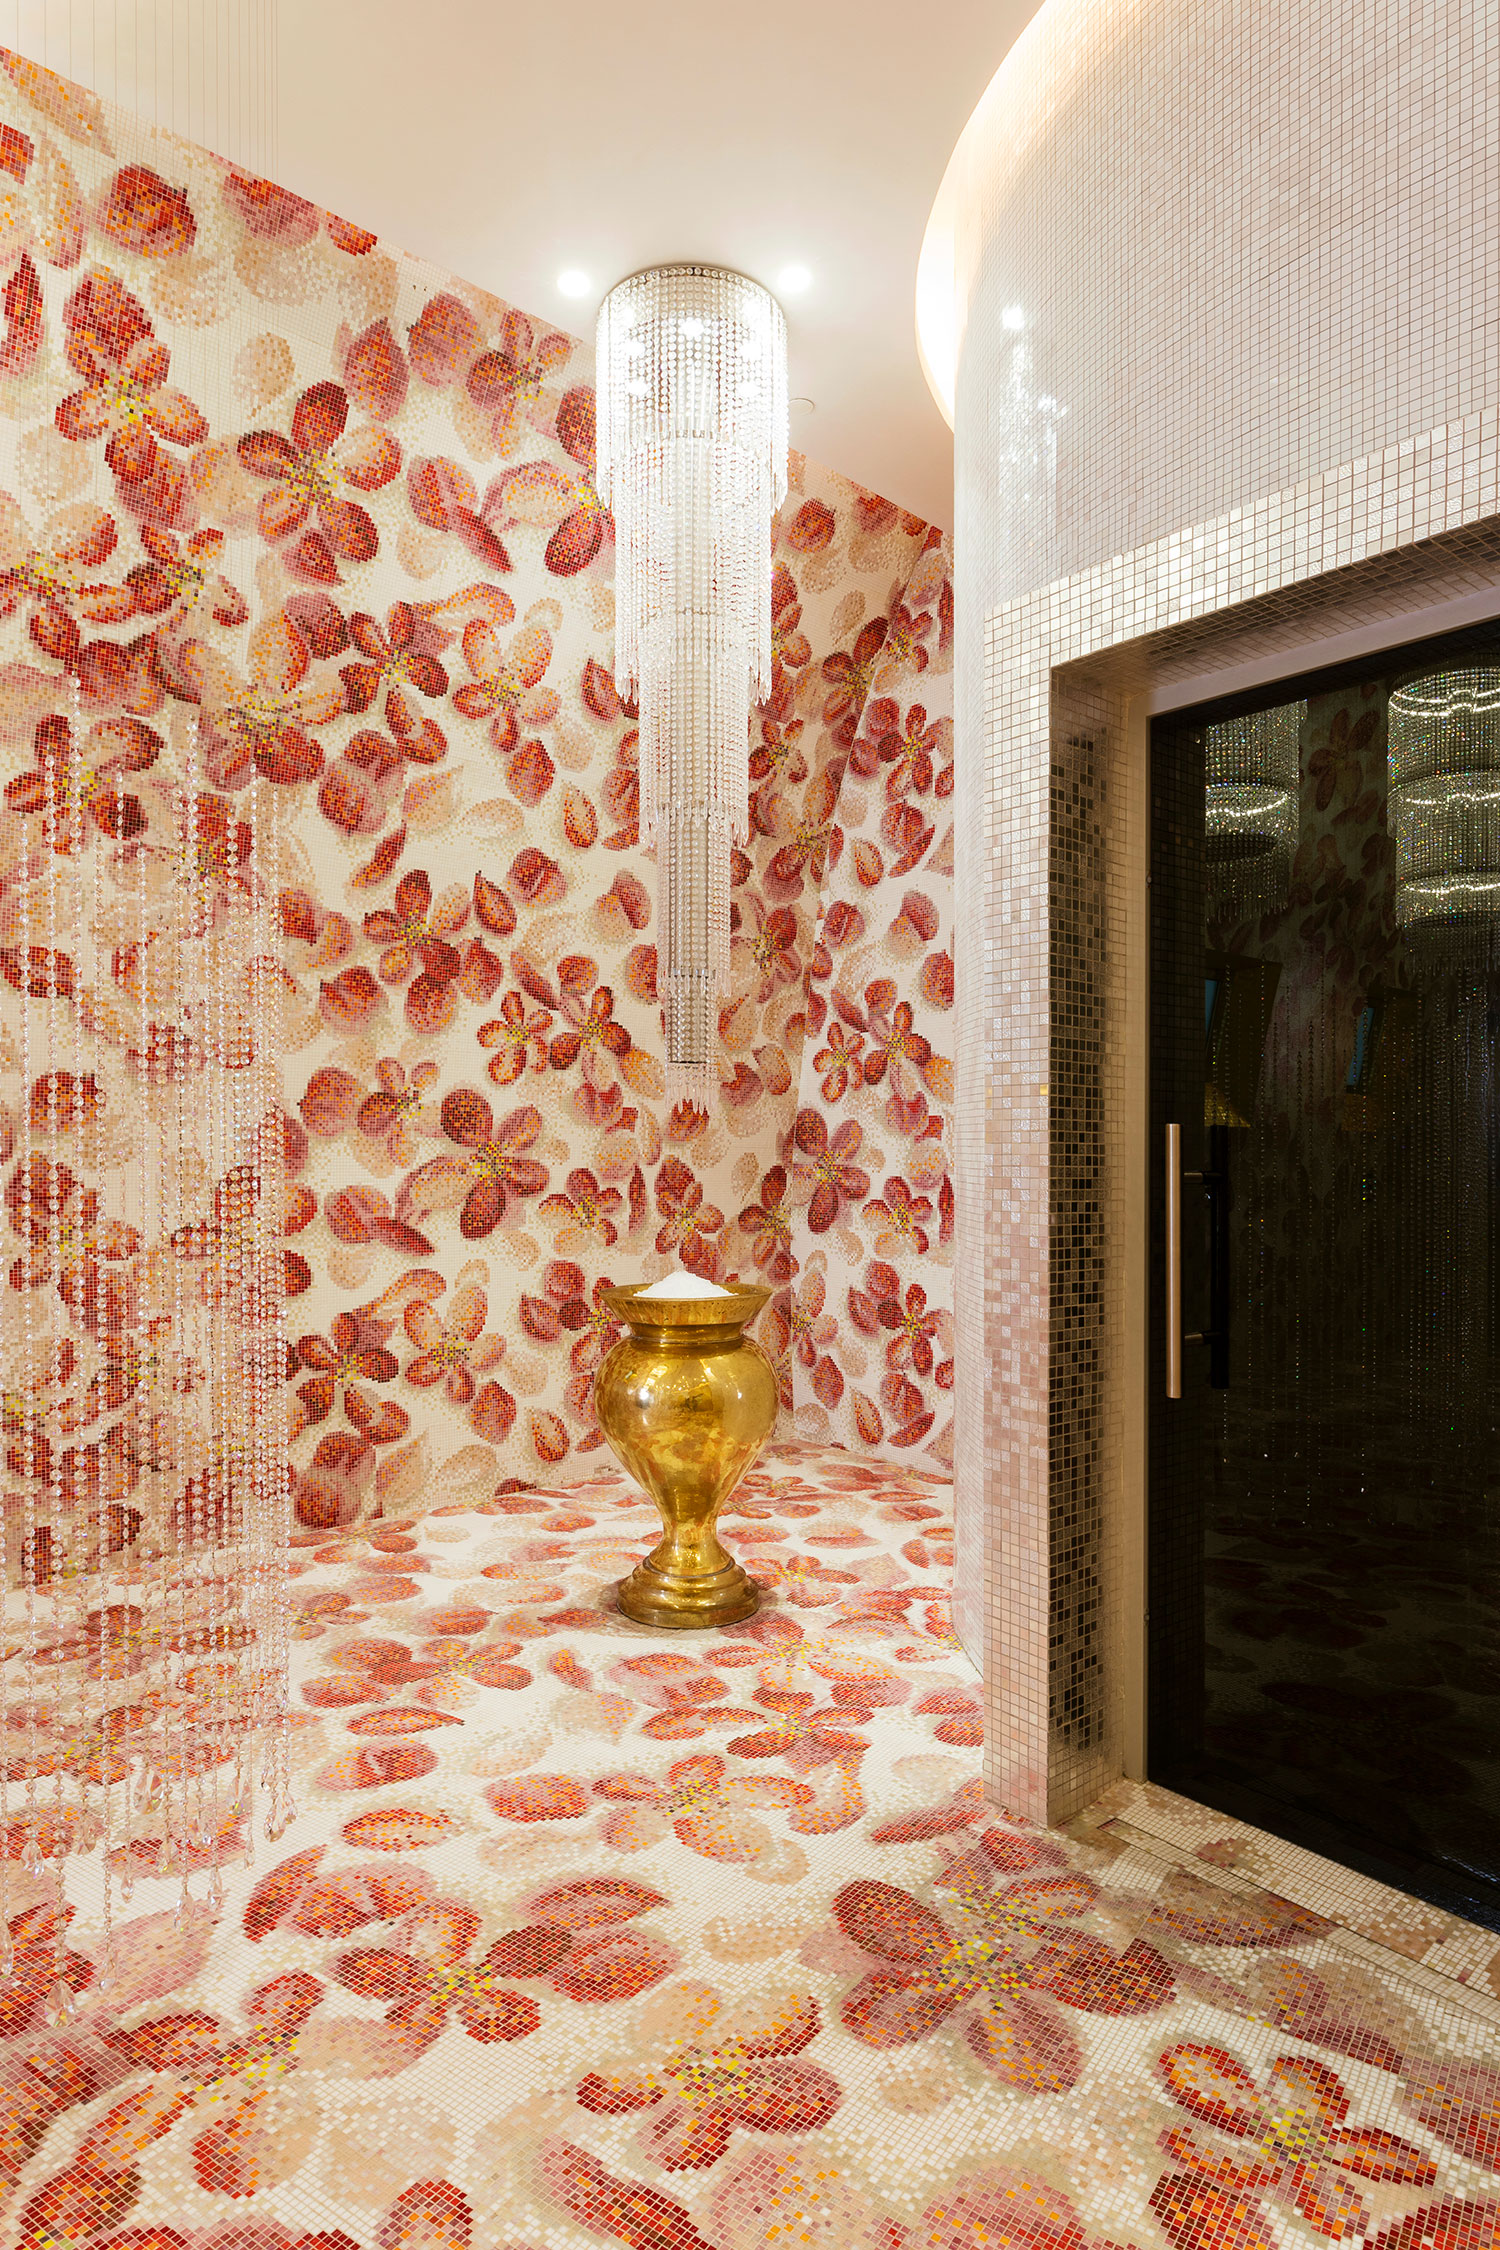 Bisazza Mosaic at the Mondrian Spa